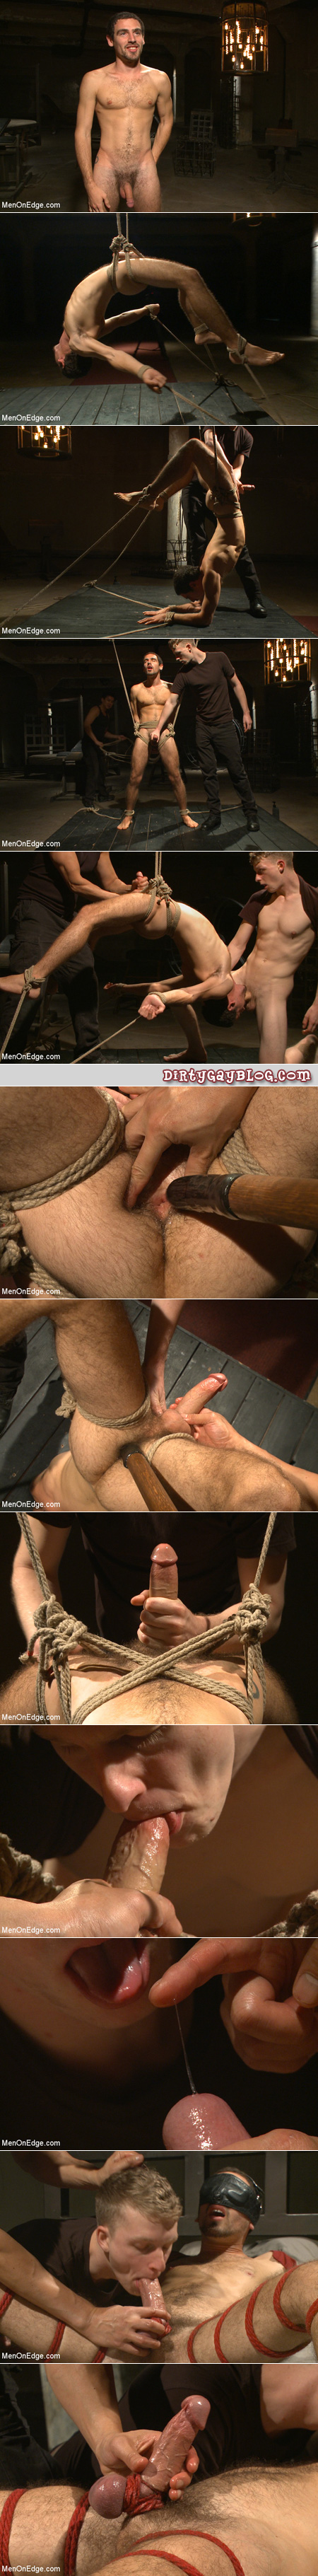 Male yoga student bound and forced to perform erotic poses while his cock is edged.